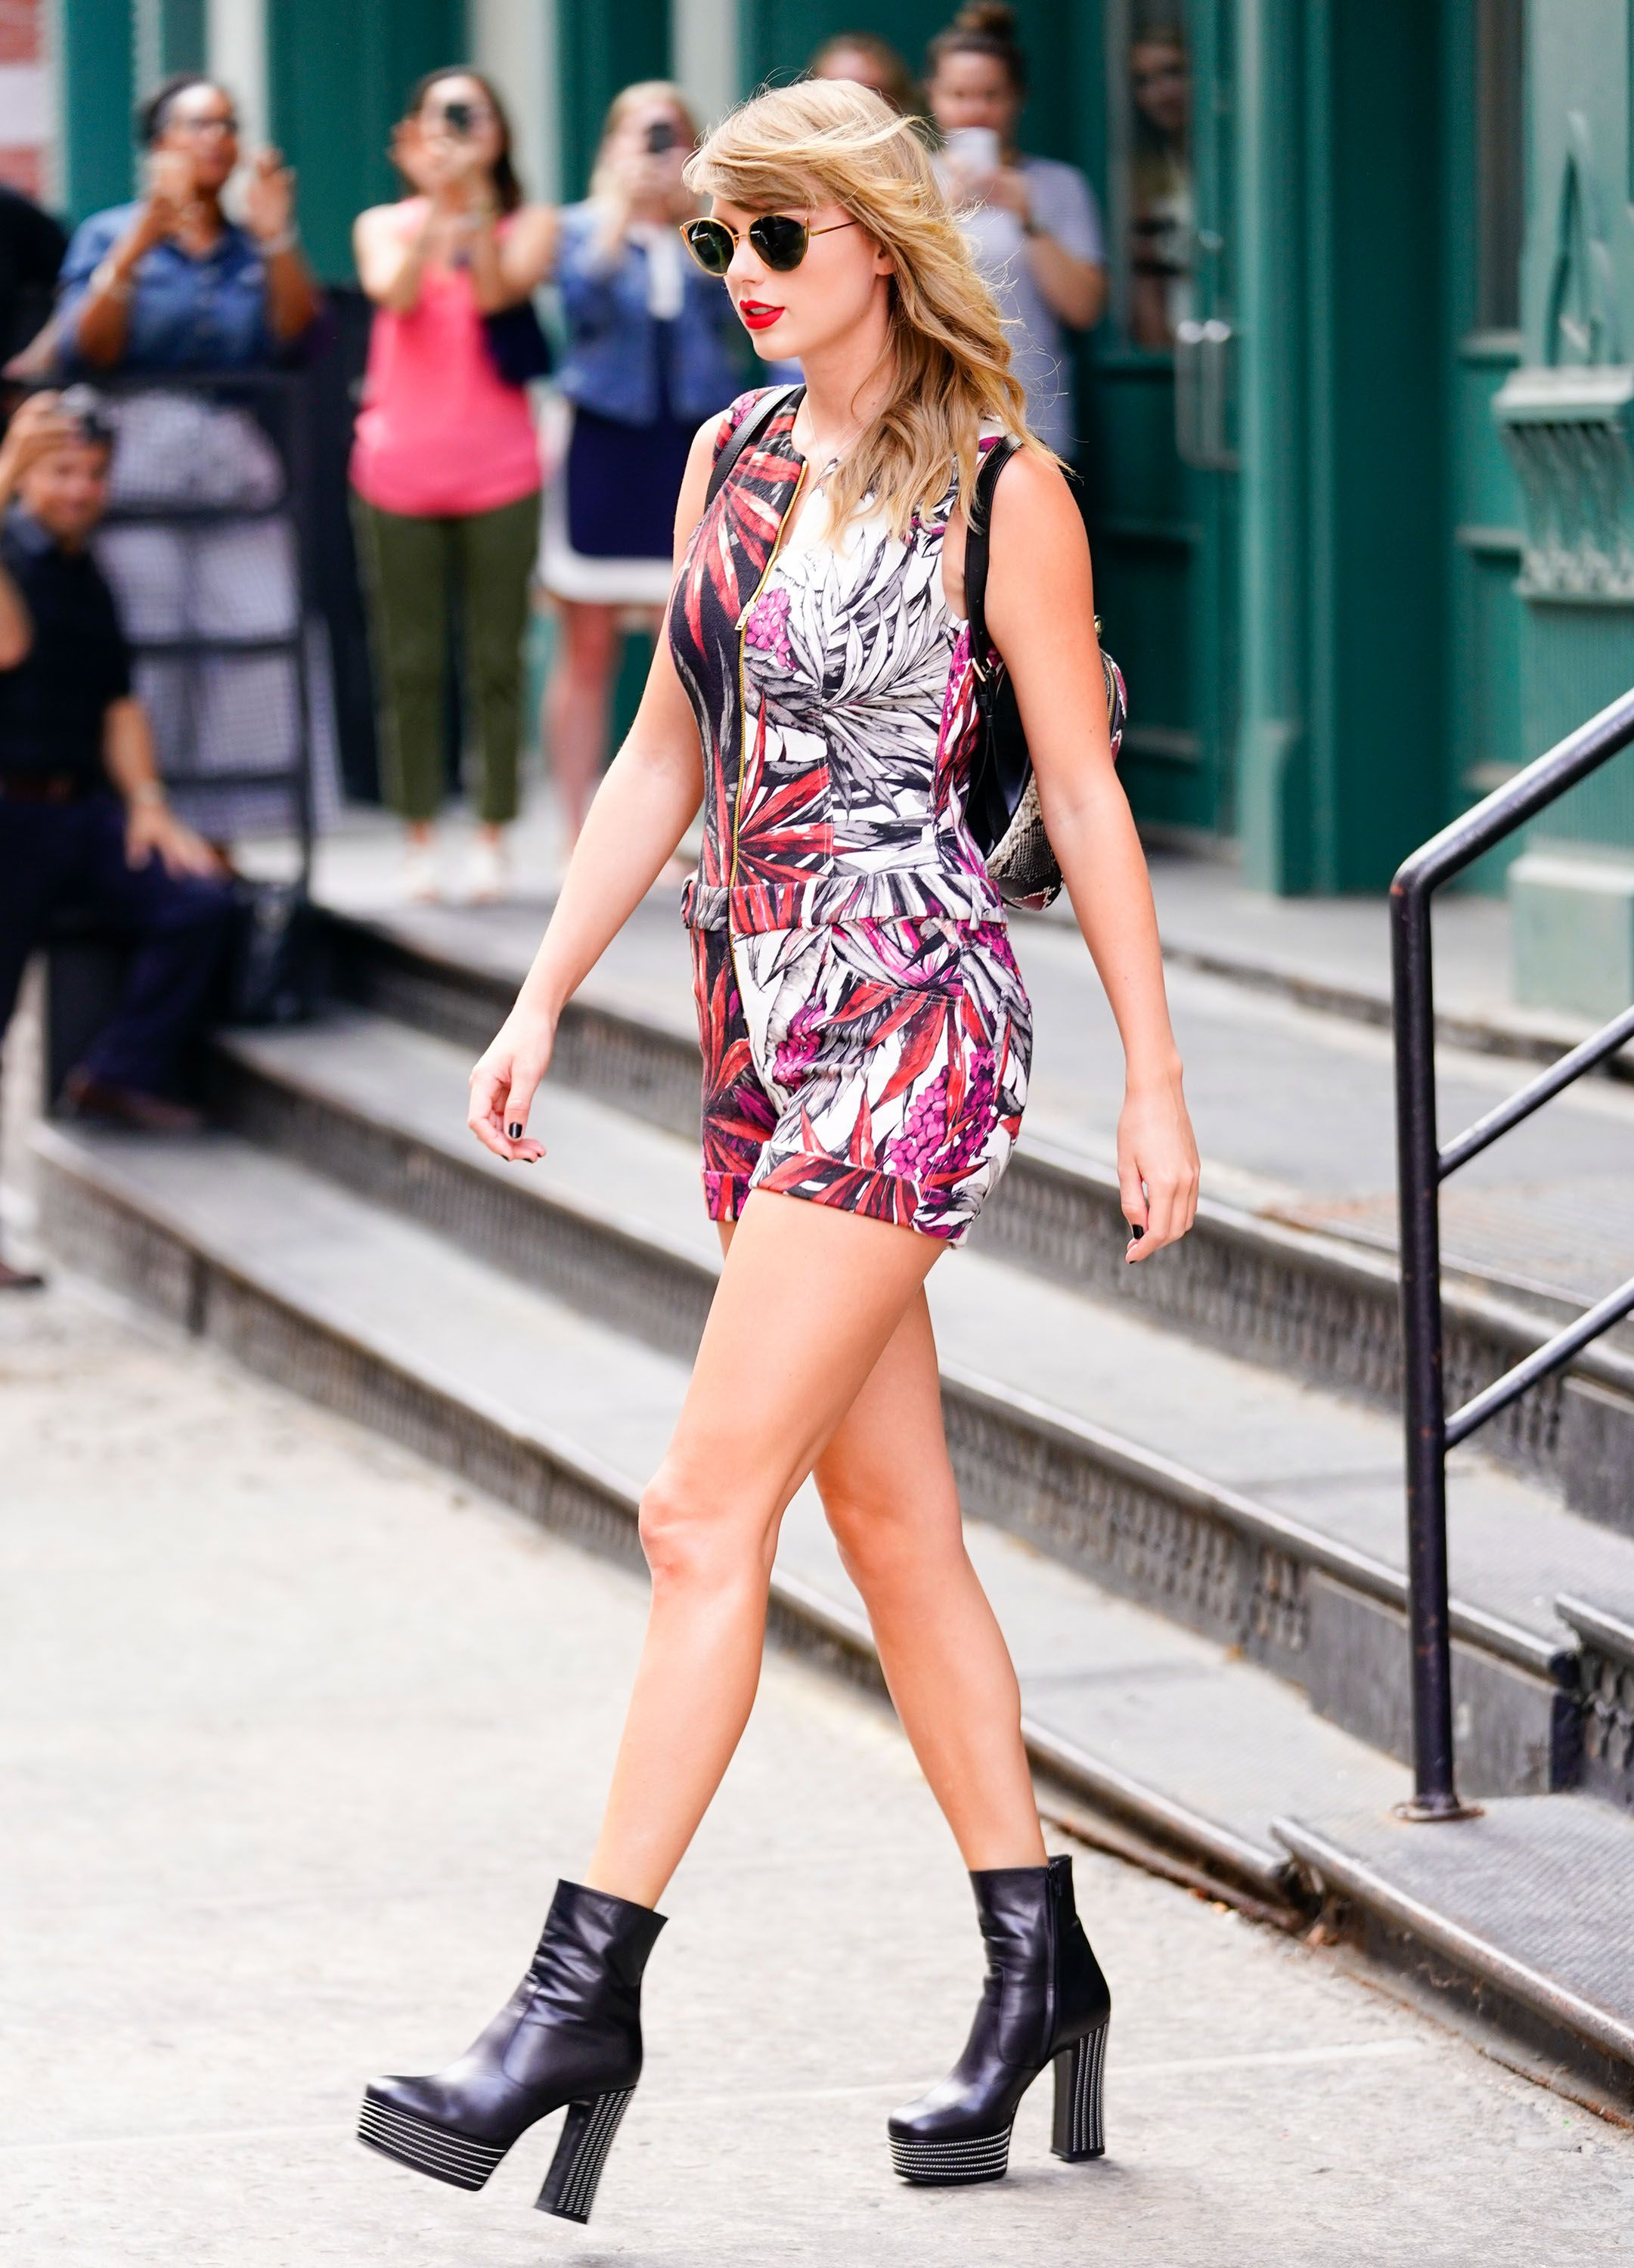 cfbe3c56ad6723 Taylor Swift in Denim Crop Top and Shorts - Fashion and Beauty Pictures of Taylor  Swift